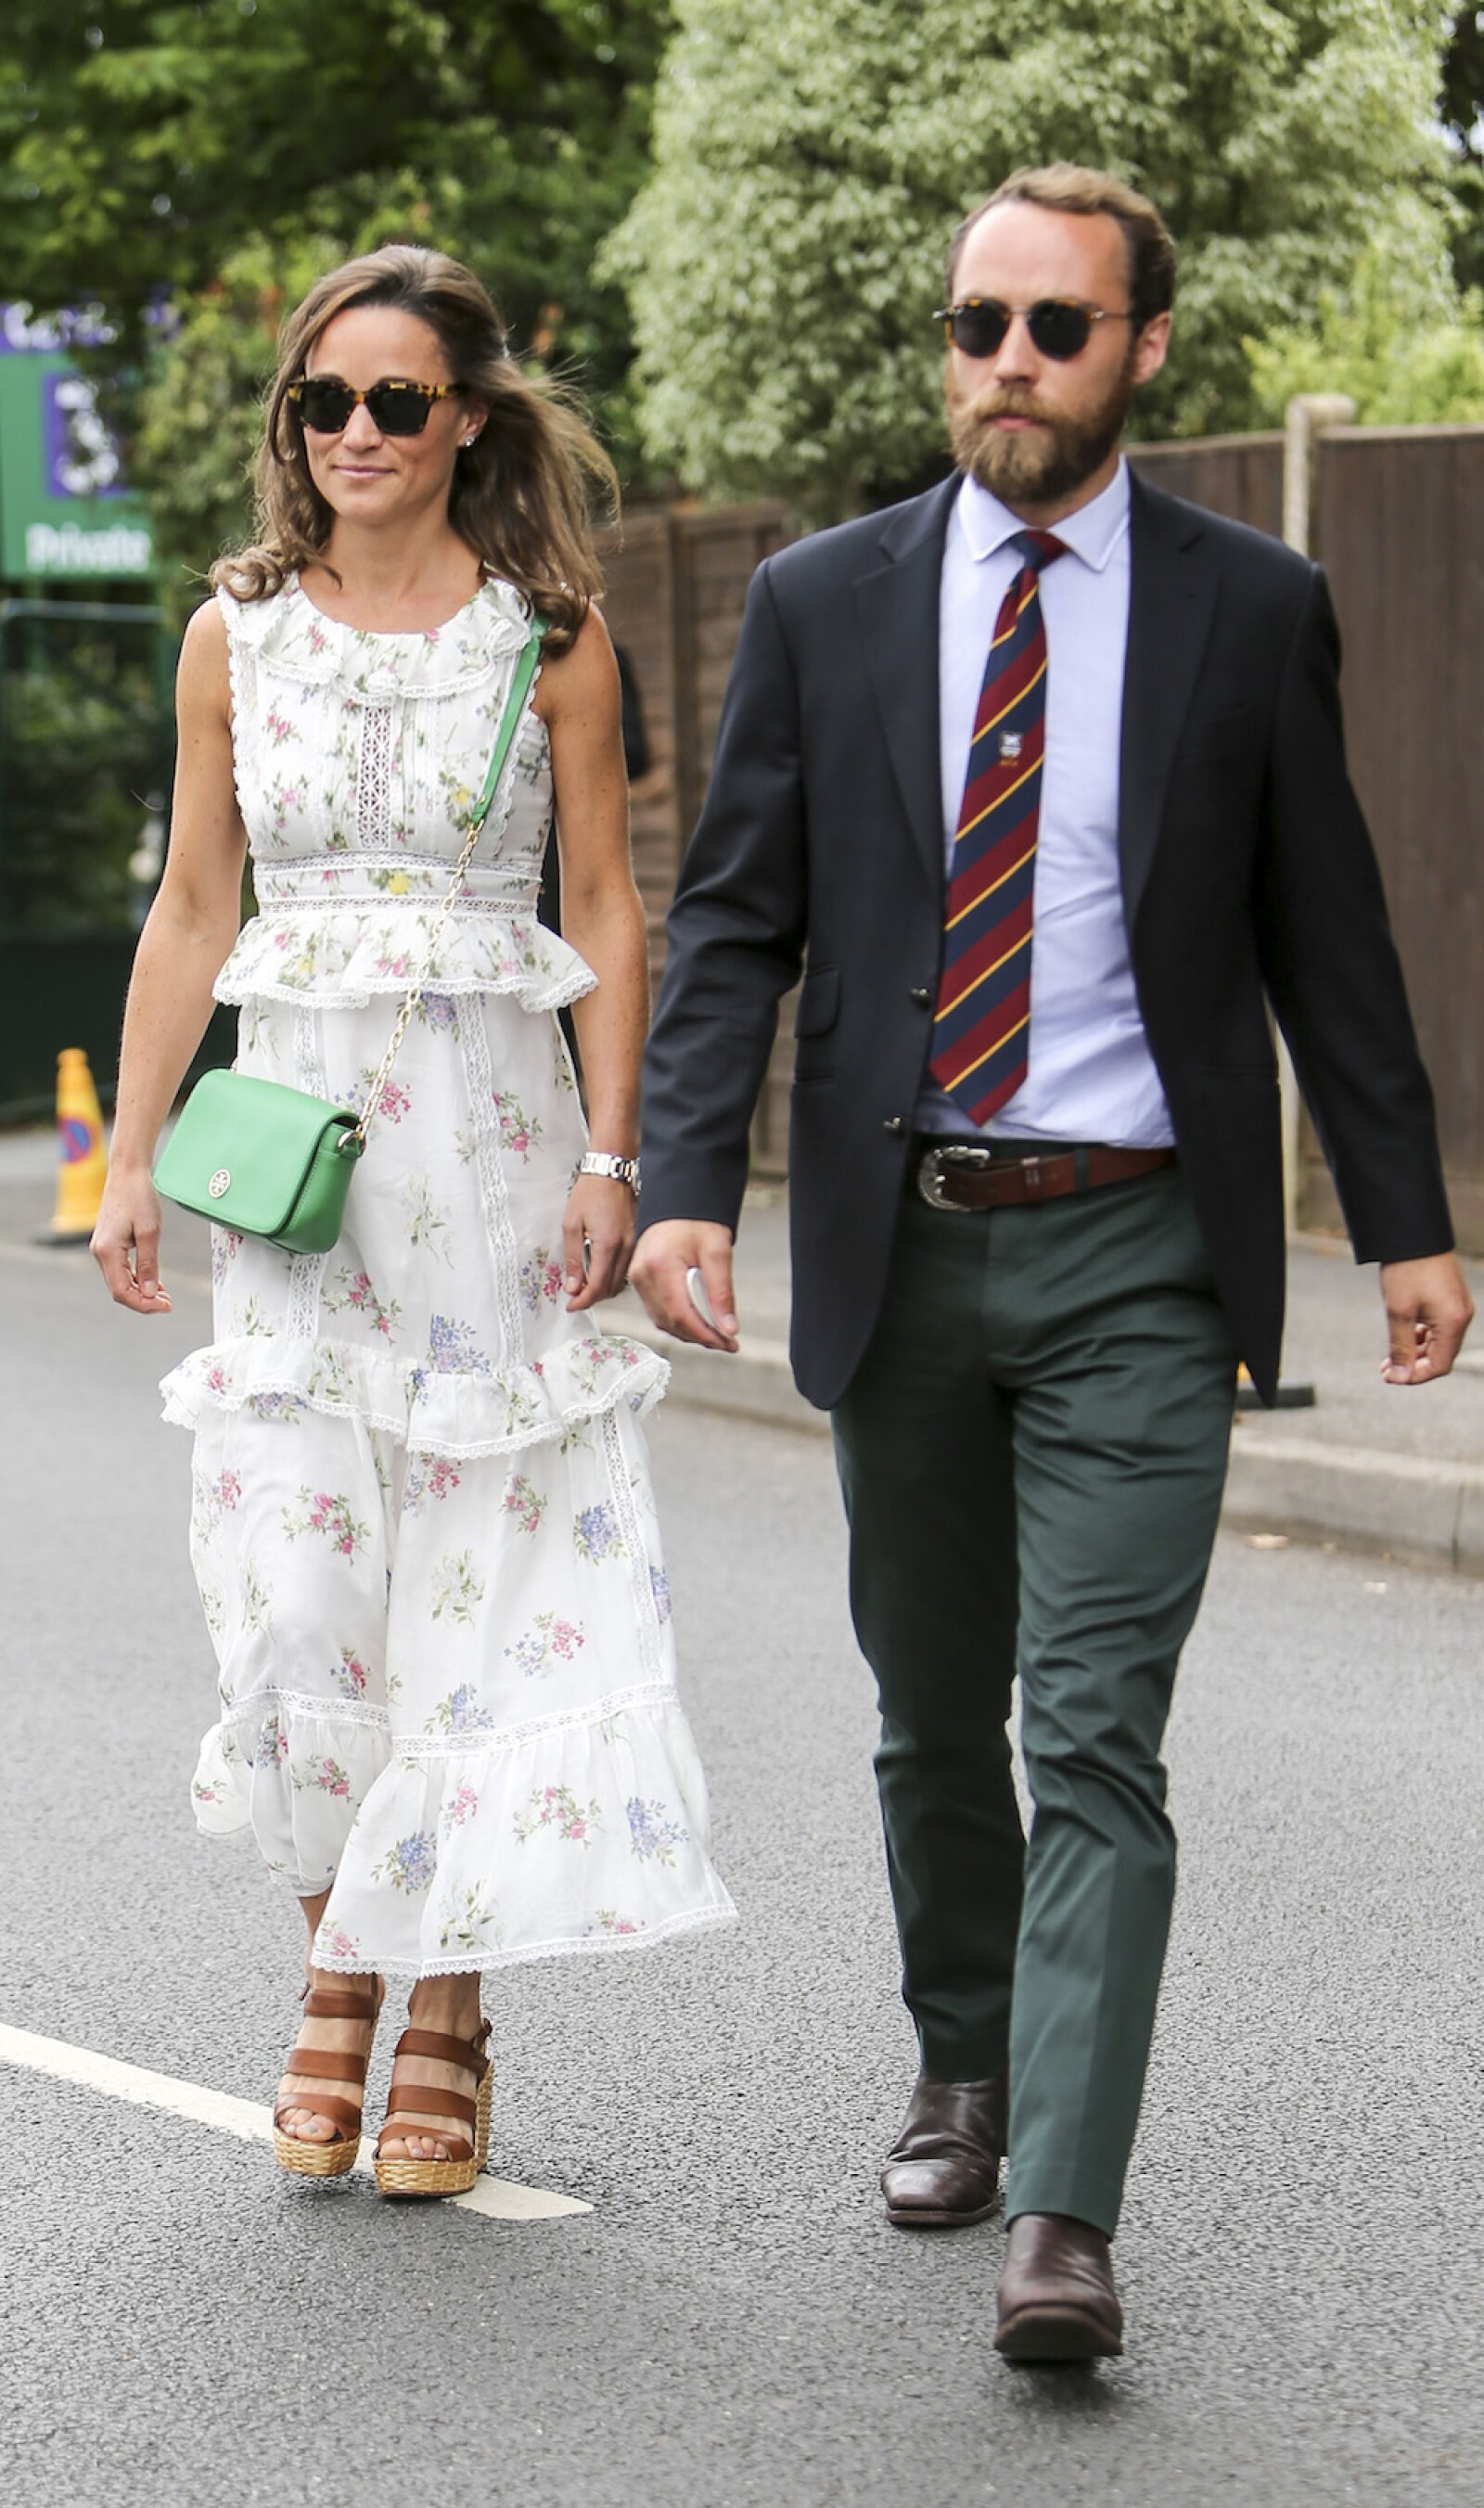 Celebrities arriving at Wimbledon, London, England, 16 July 2017